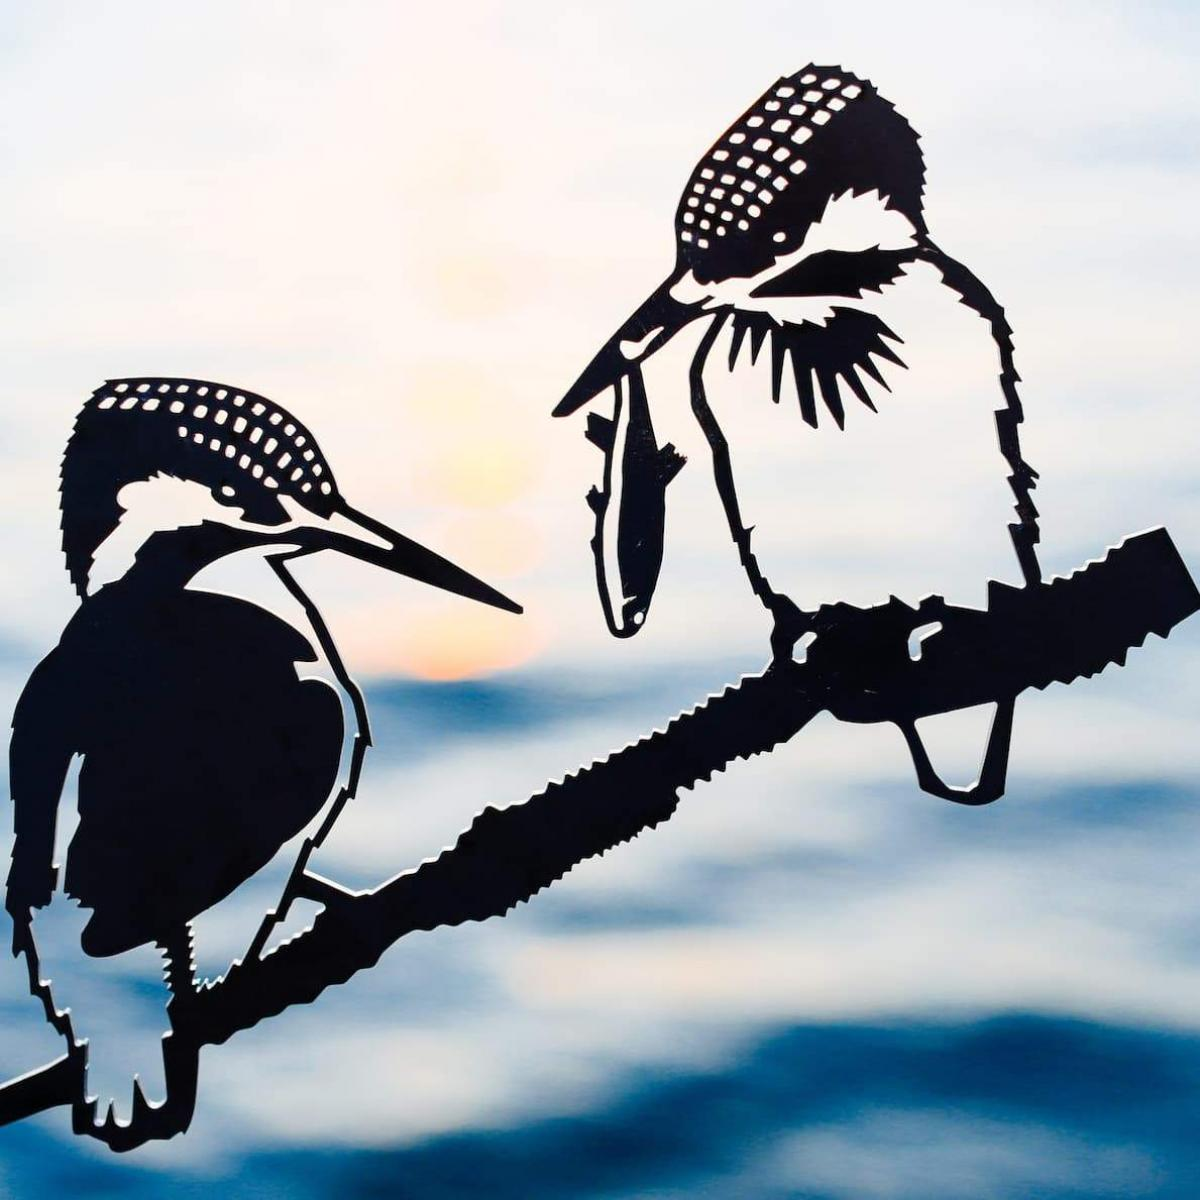 Metalbird - Kingfishers - Metalbird - Throw Some Seeds - Australian gardening gifts and eco products online!